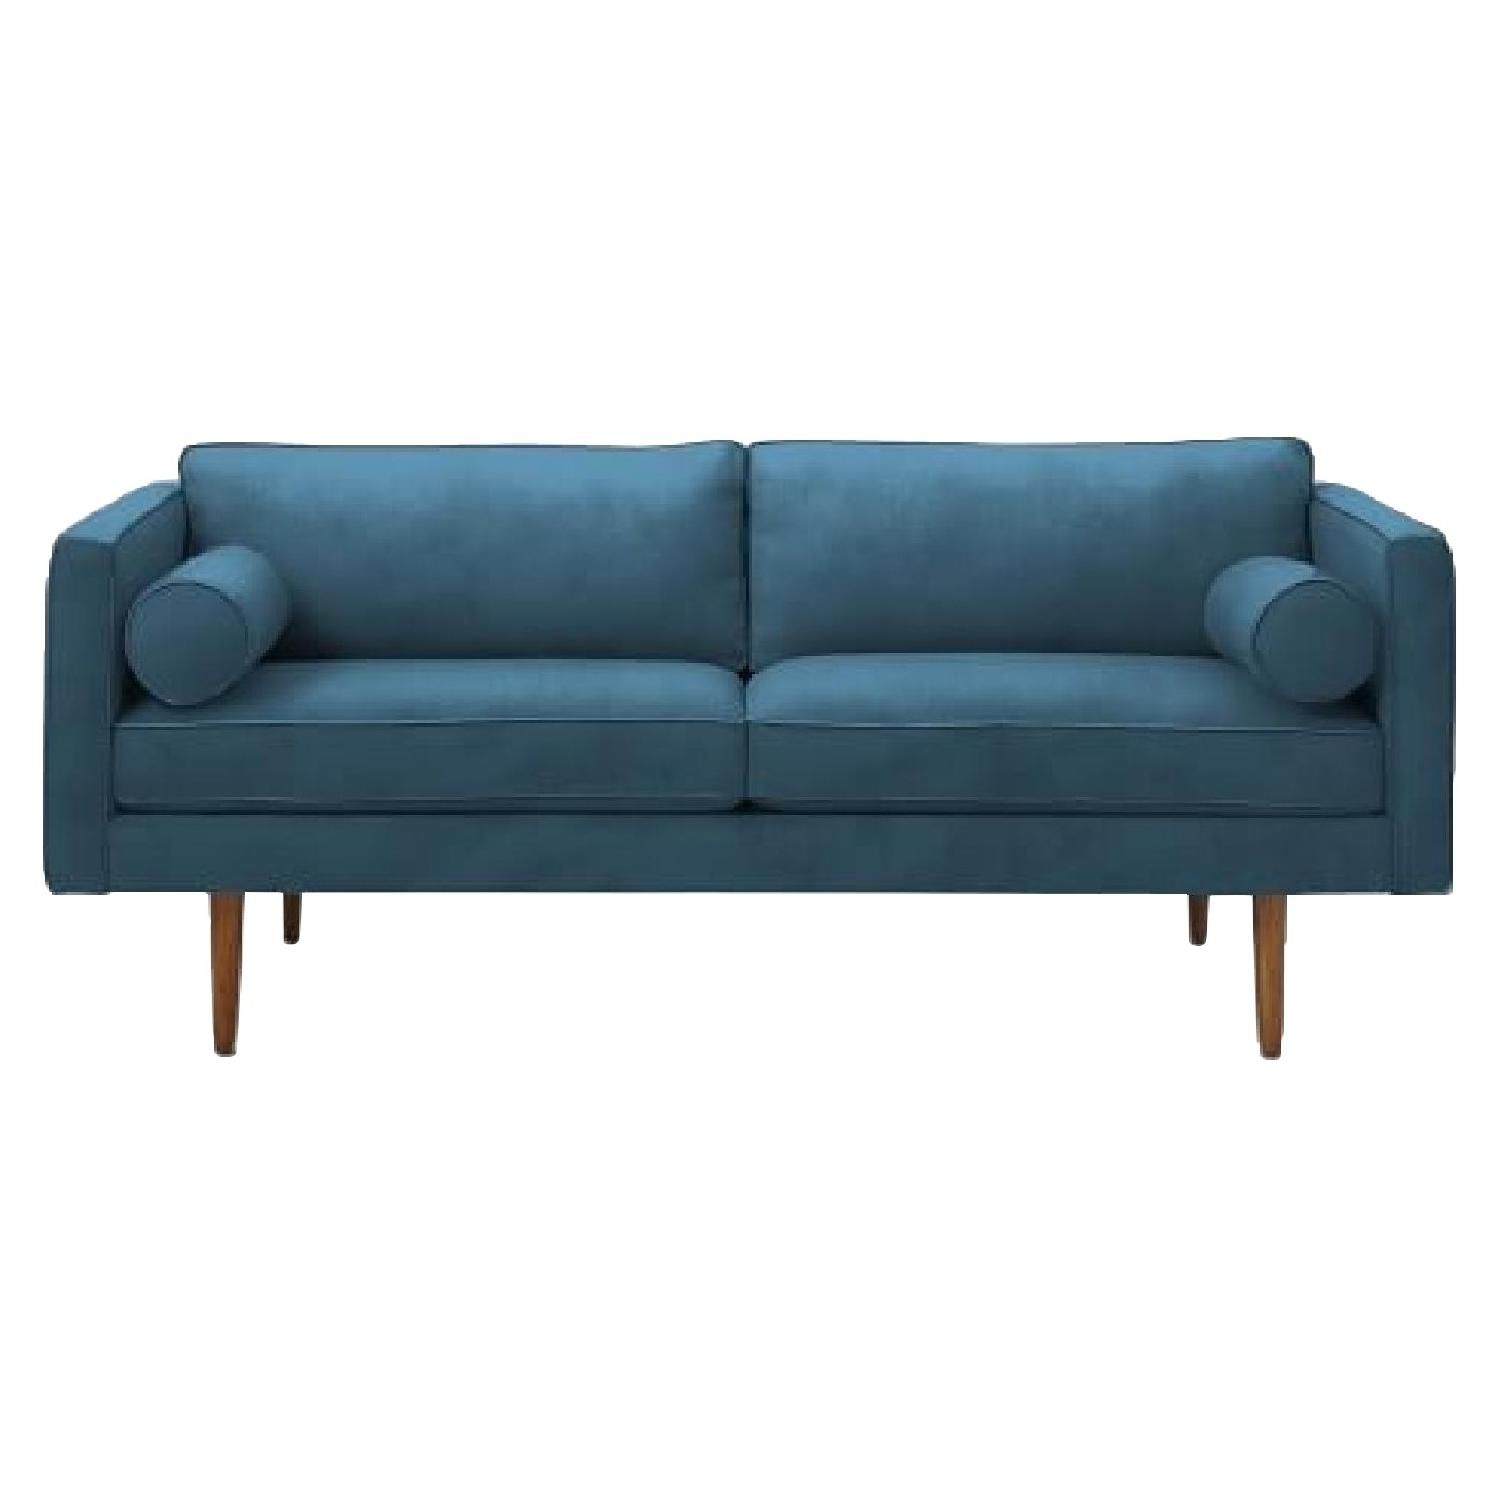 West Elm Monroe Mid-Century Sofa in Blue Velvet